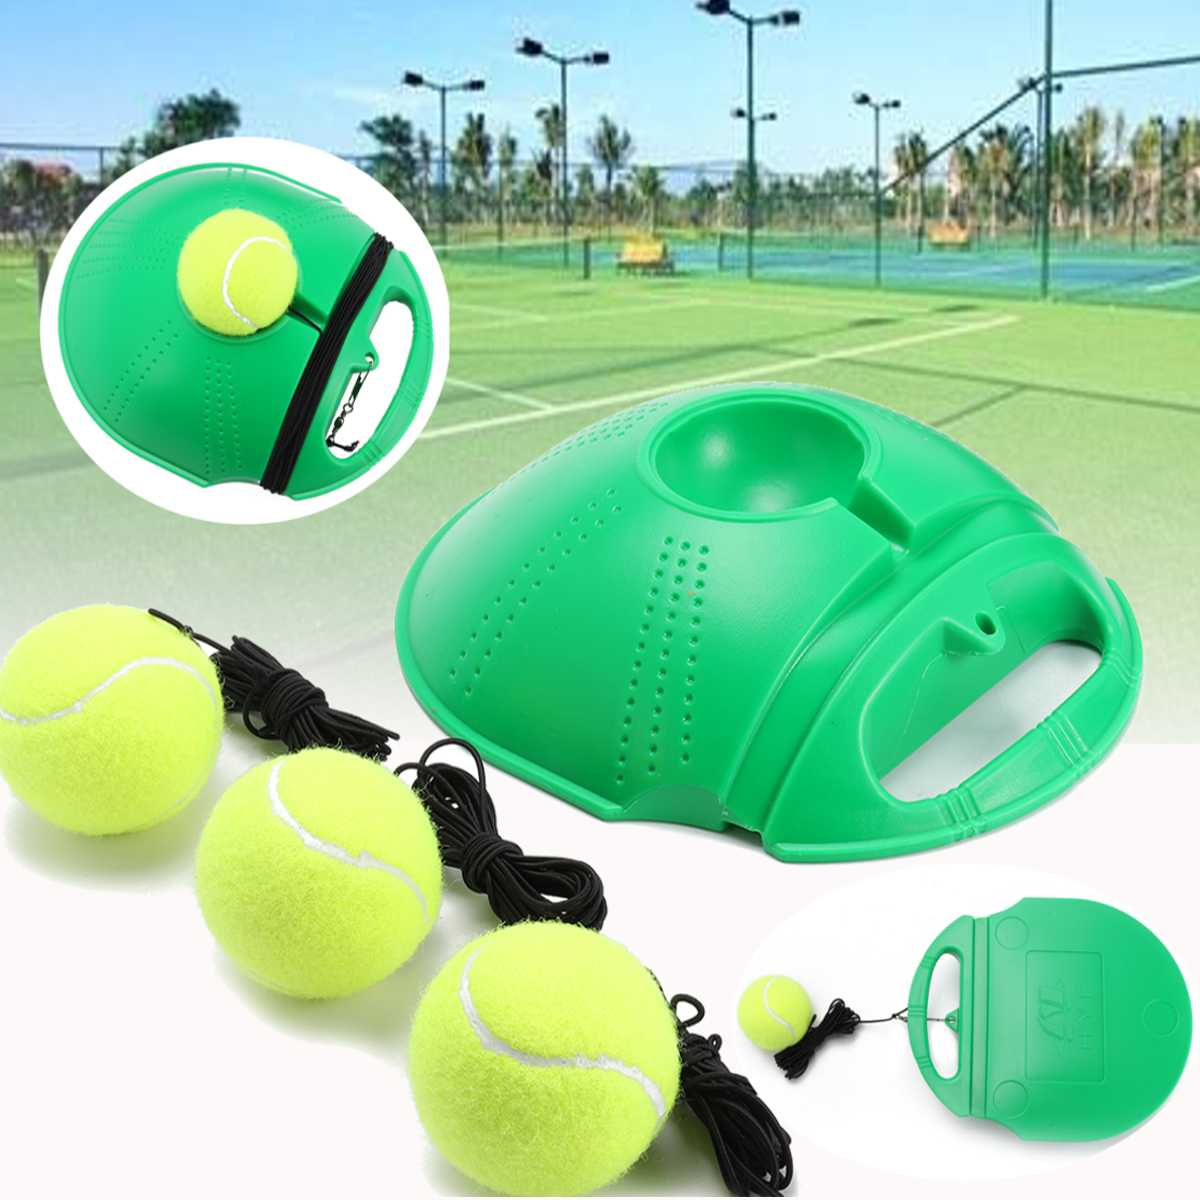 Tennis Trainer and Self-study Tennis Training Tool with Rebound Balls and Baseboard 9